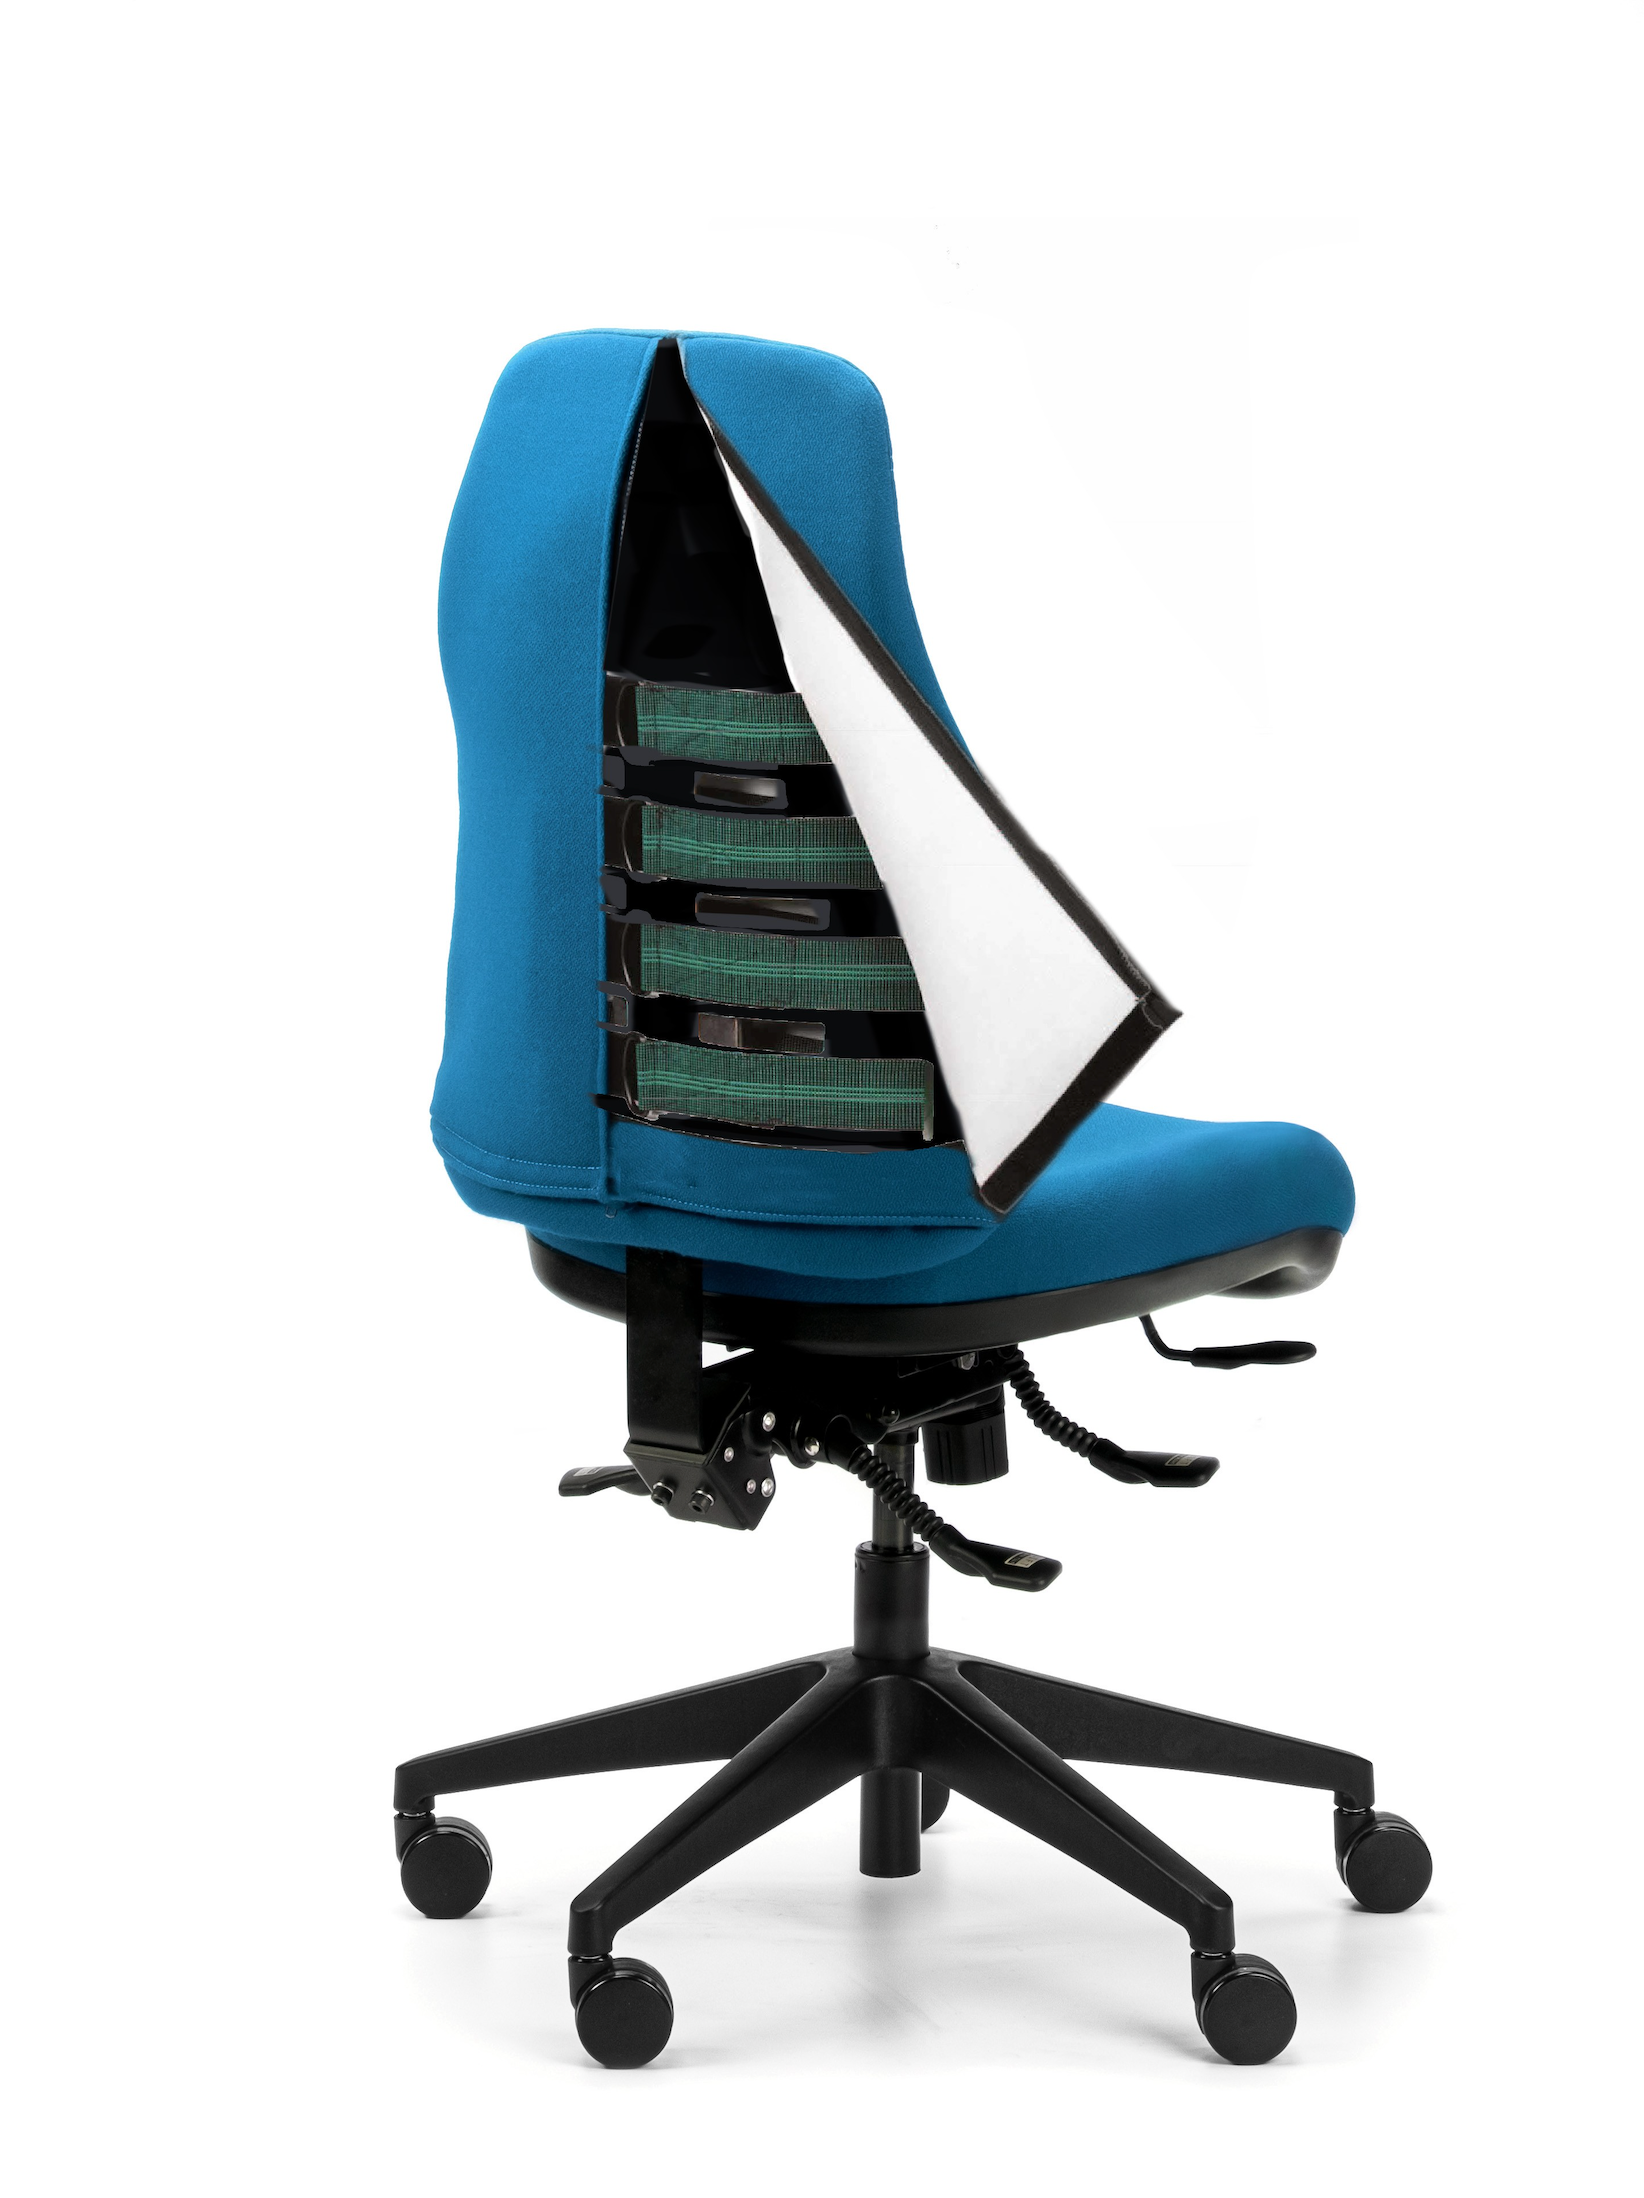 Chair Solutions Therapod Orthopod Heavy Duty Office Chair